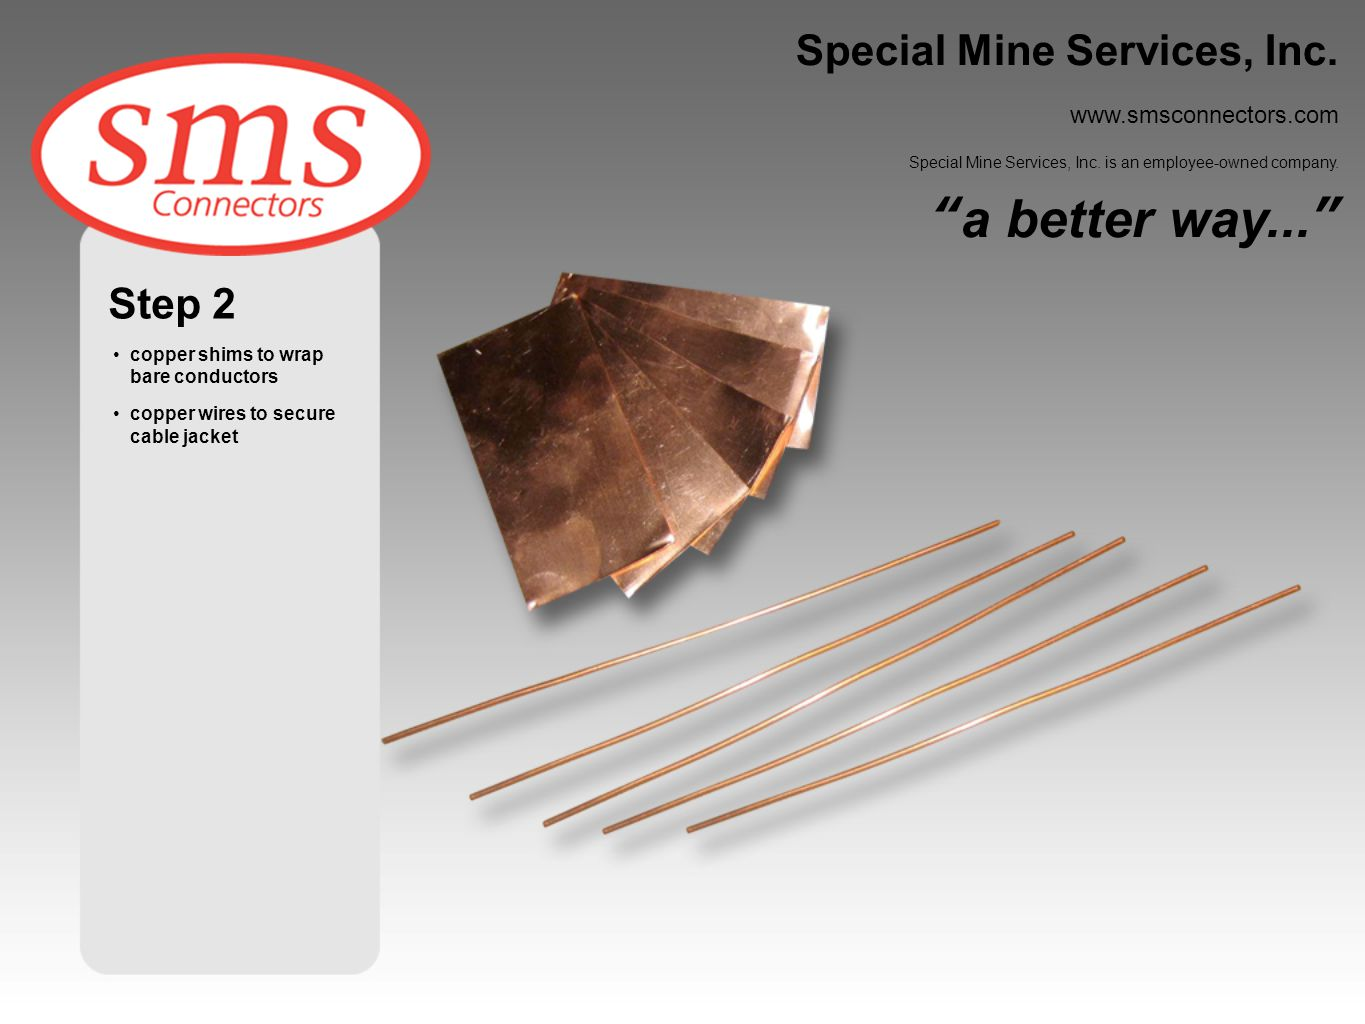 Step 3 install copper wire on cable jacket wrap bare conductor with copper shim Special Mine Services, Inc.